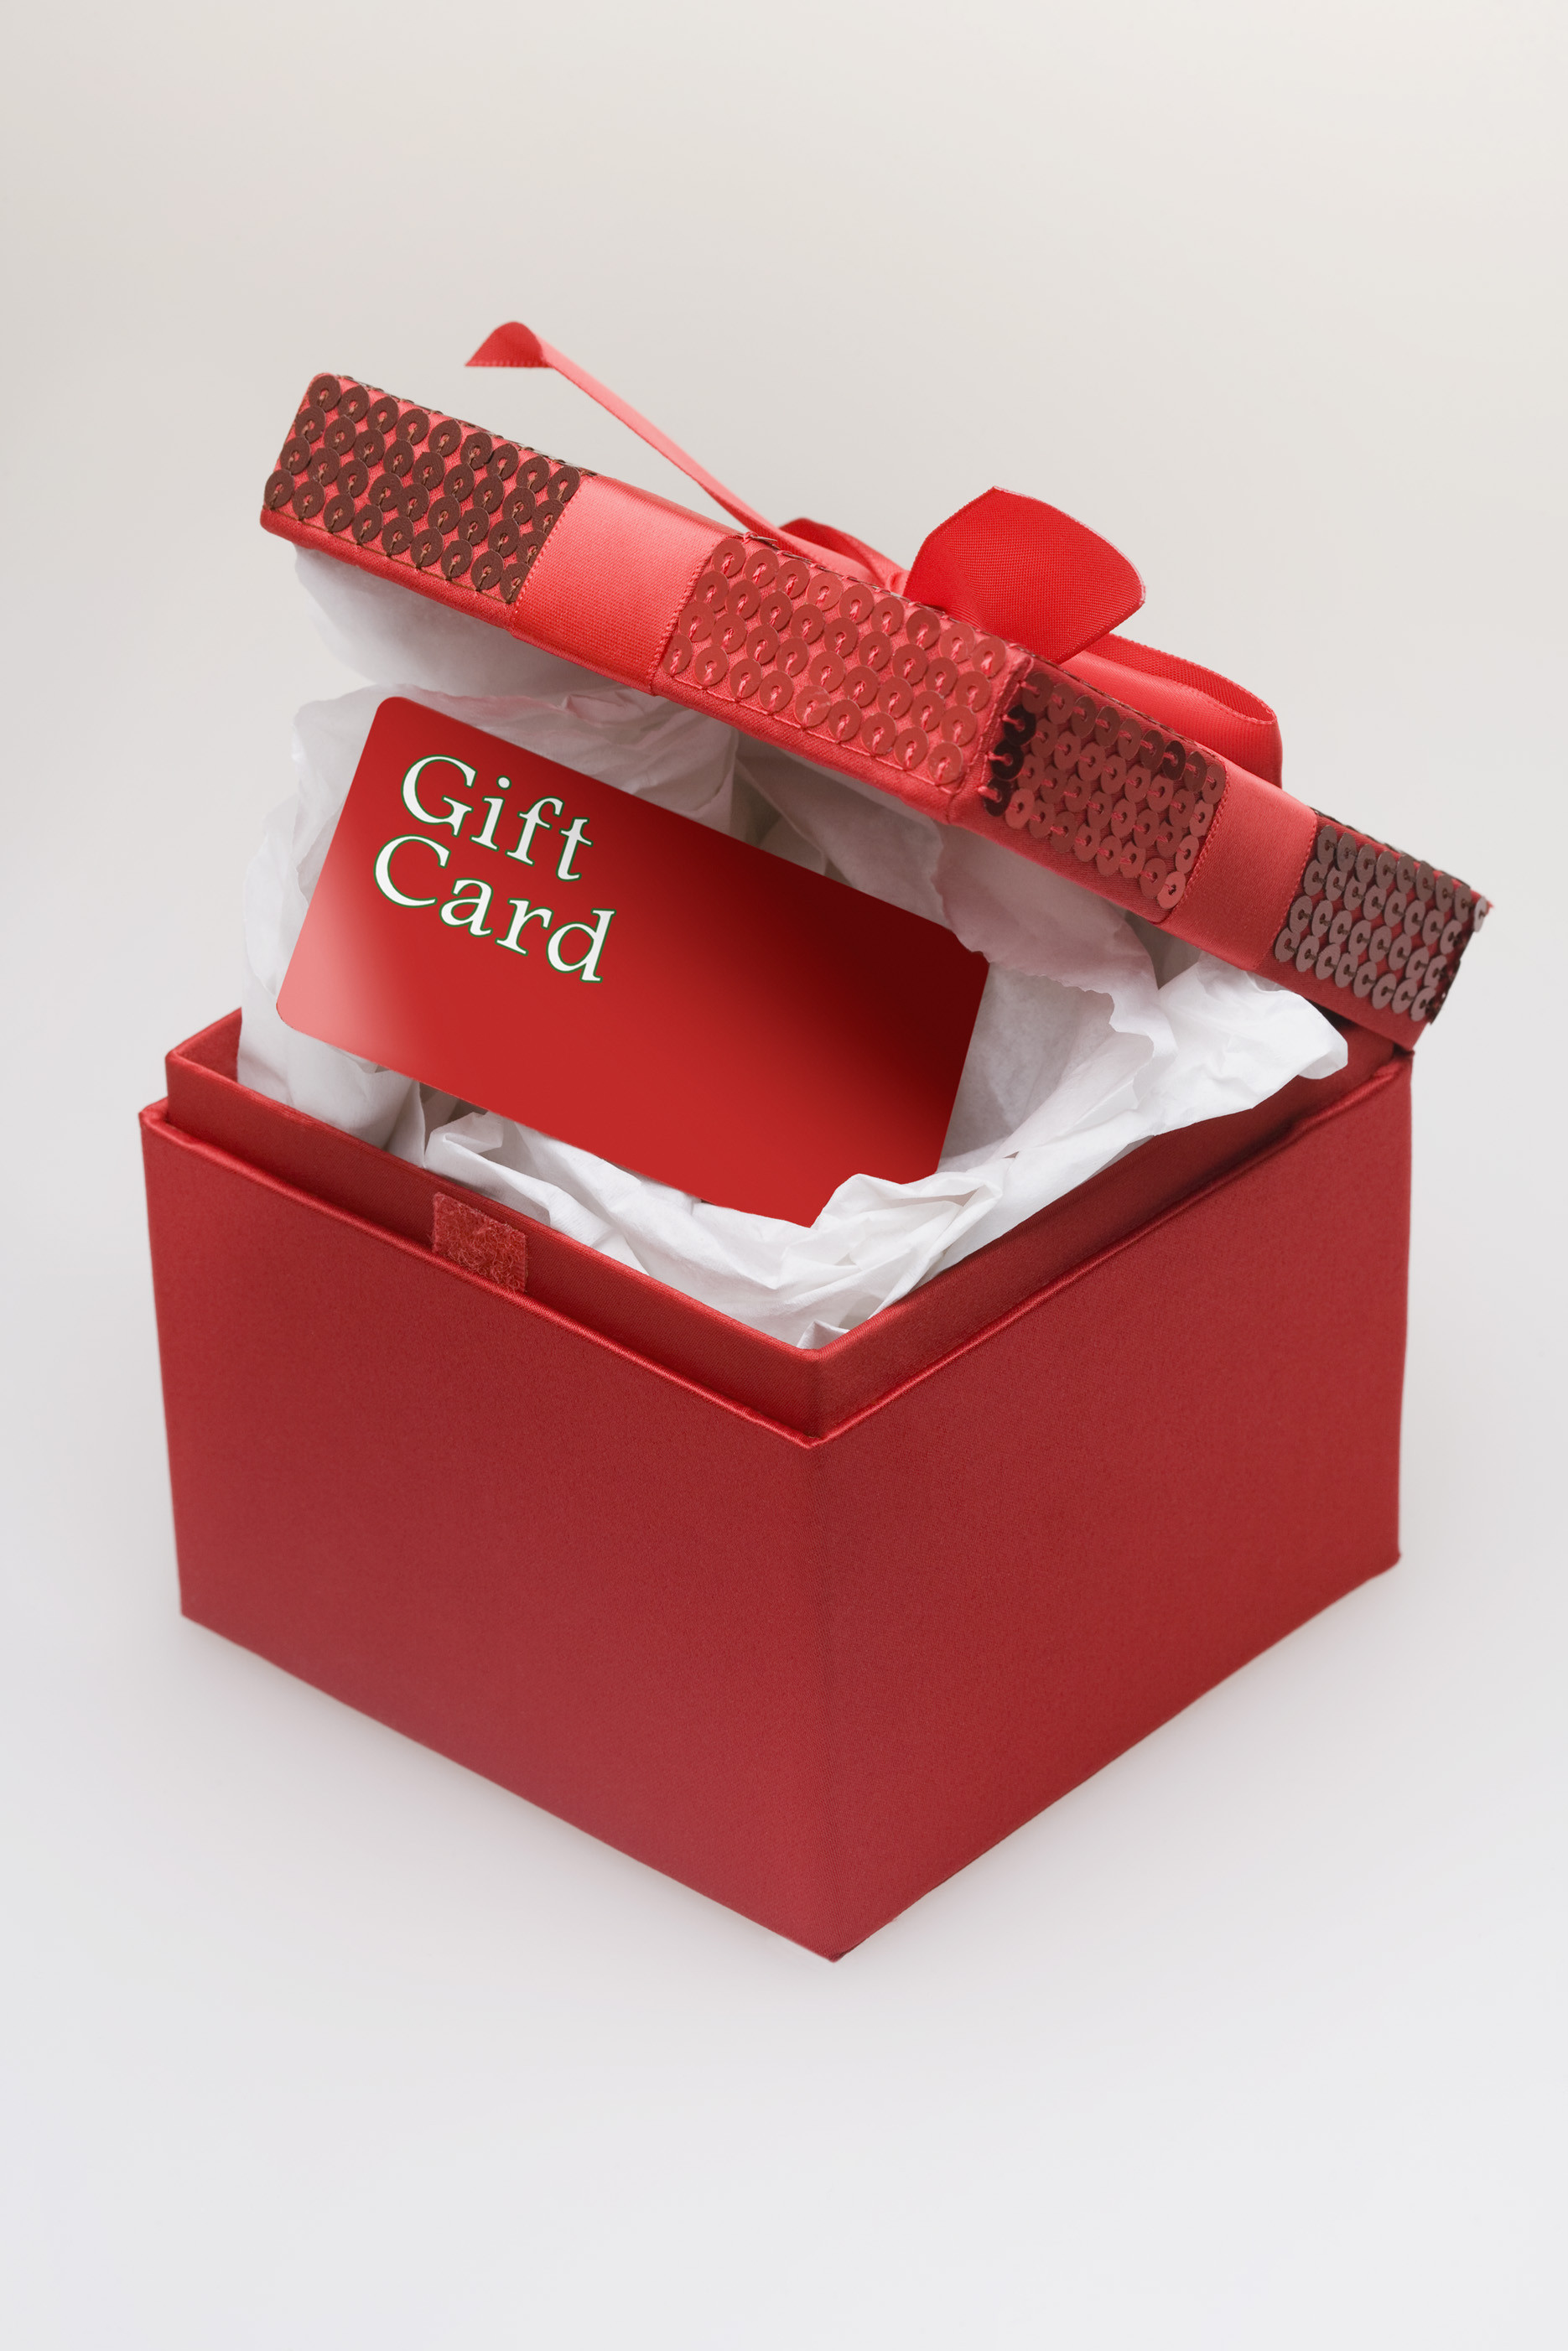 Best ideas about Gift Card Wrapping Ideas . Save or Pin Just when you thought you were done shopping Now.